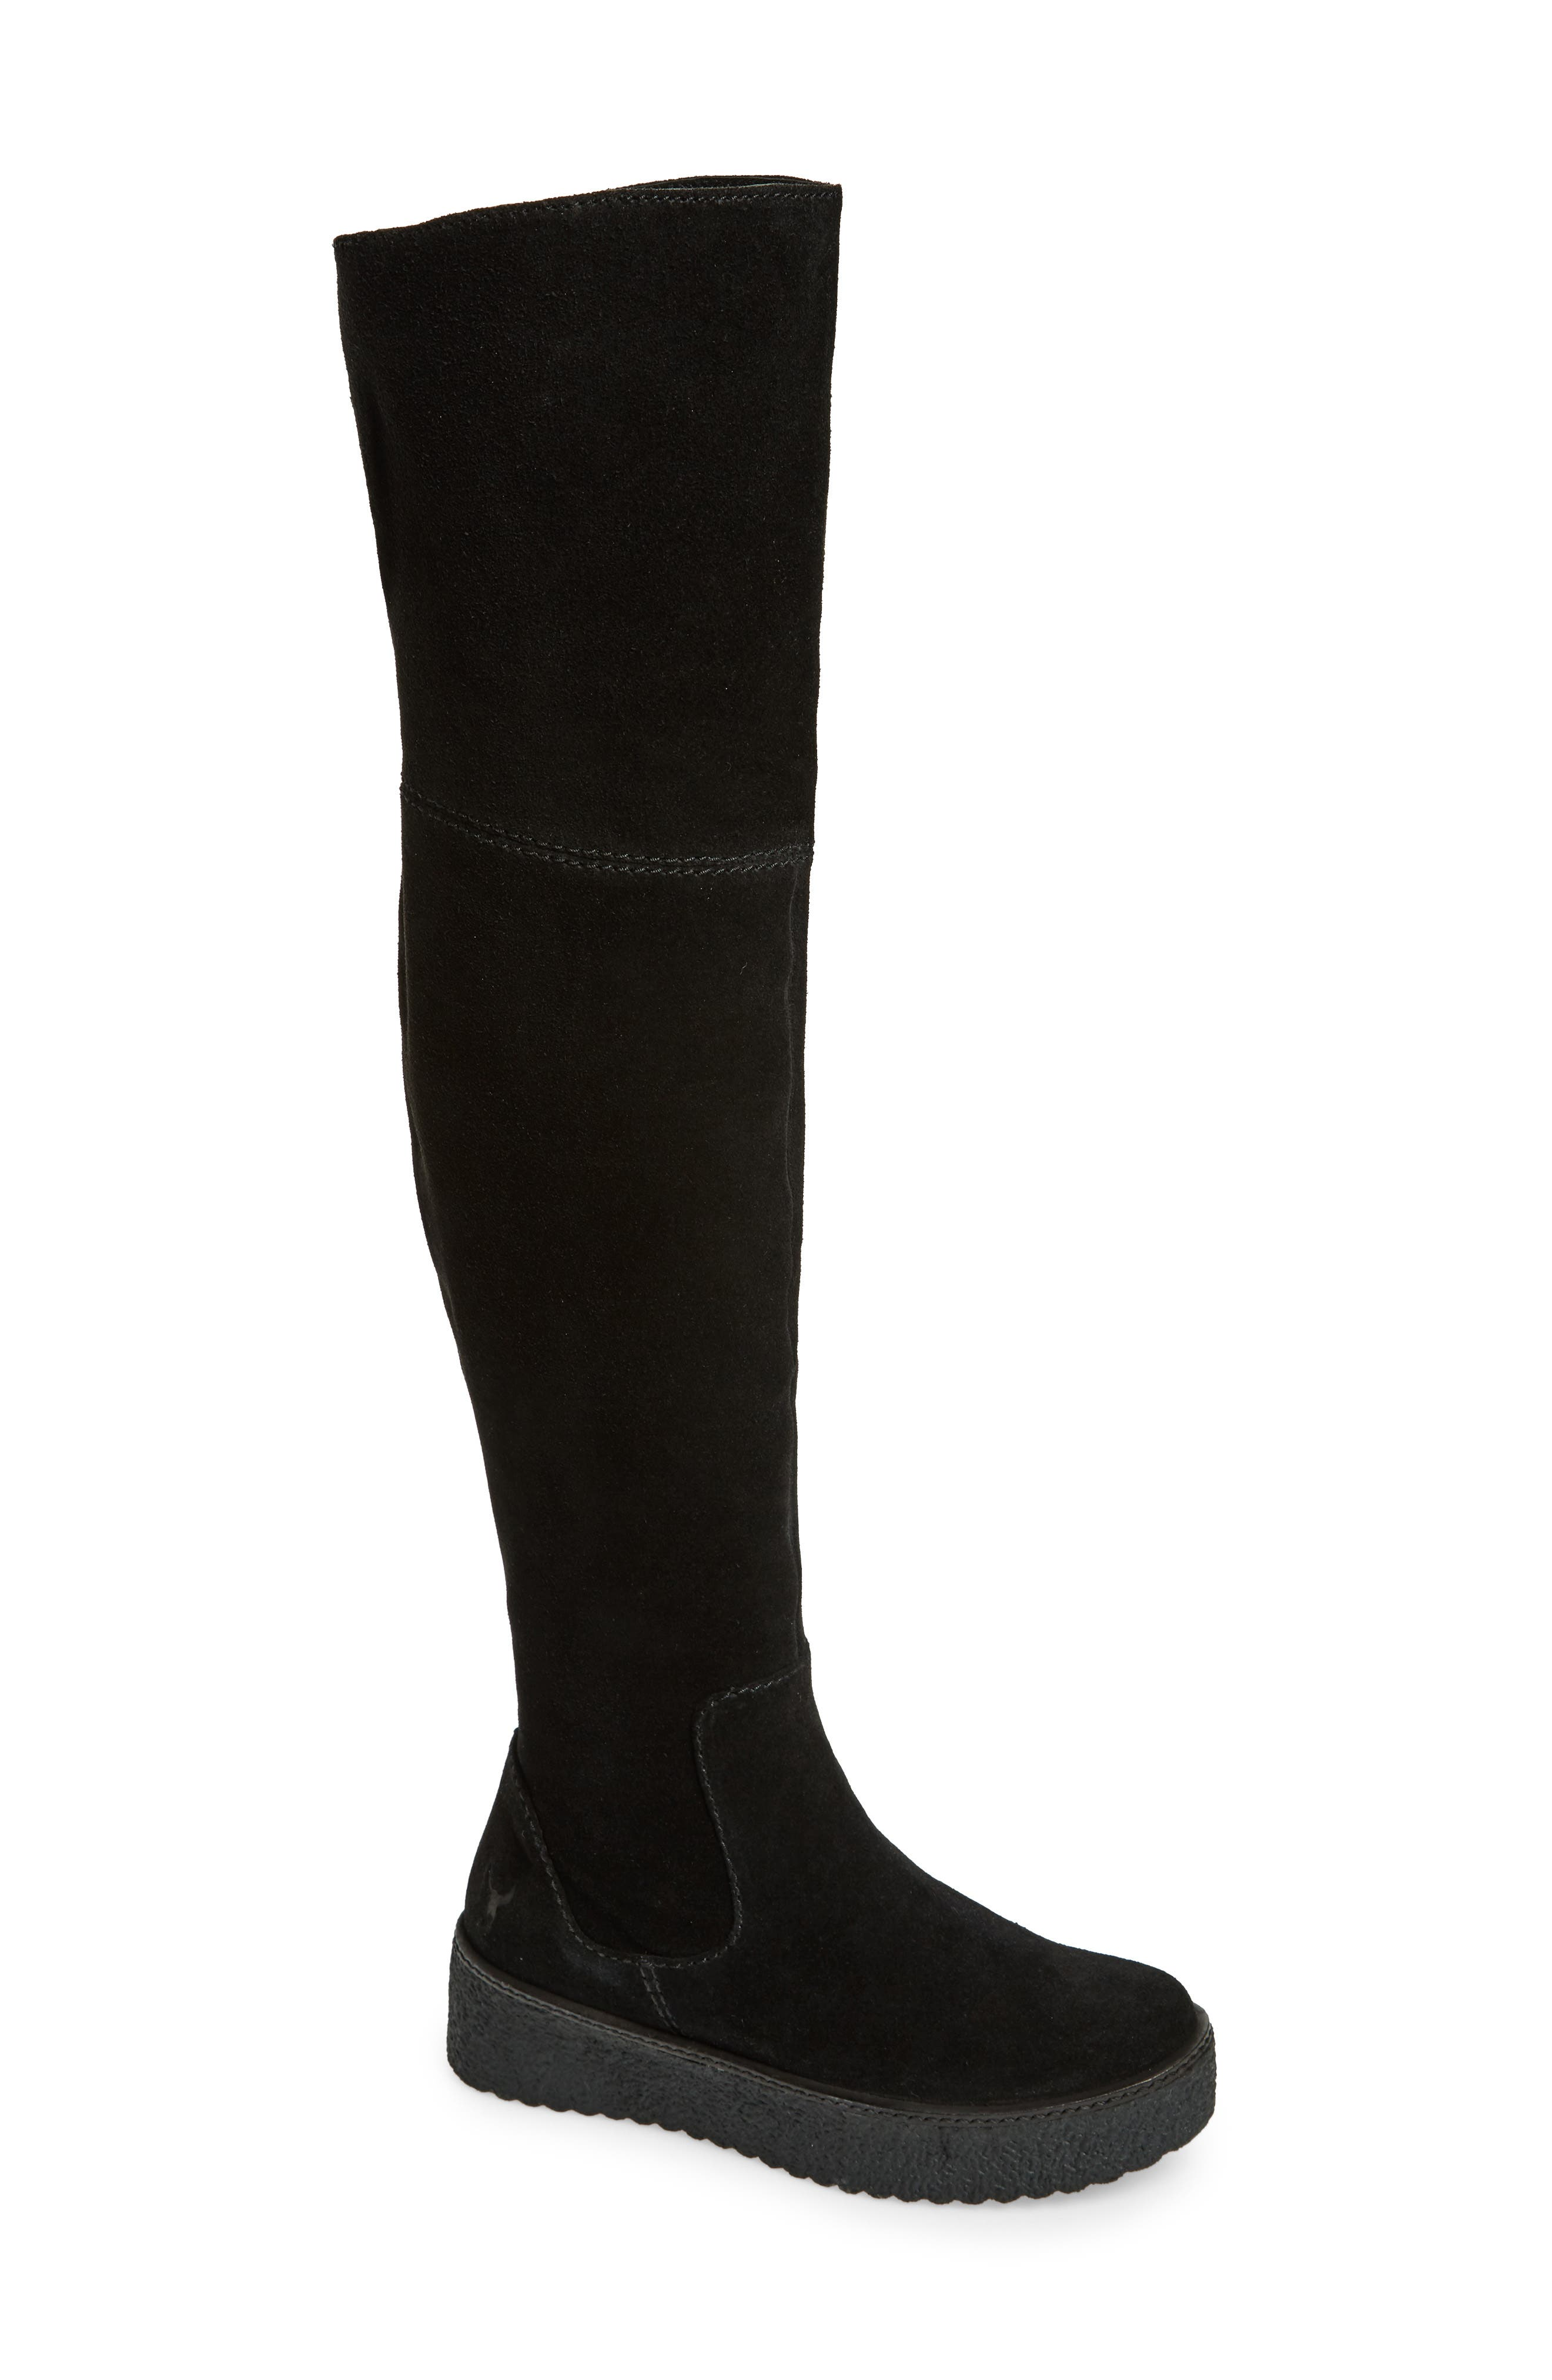 Tazza Over the Knee Boot,                         Main,                         color,